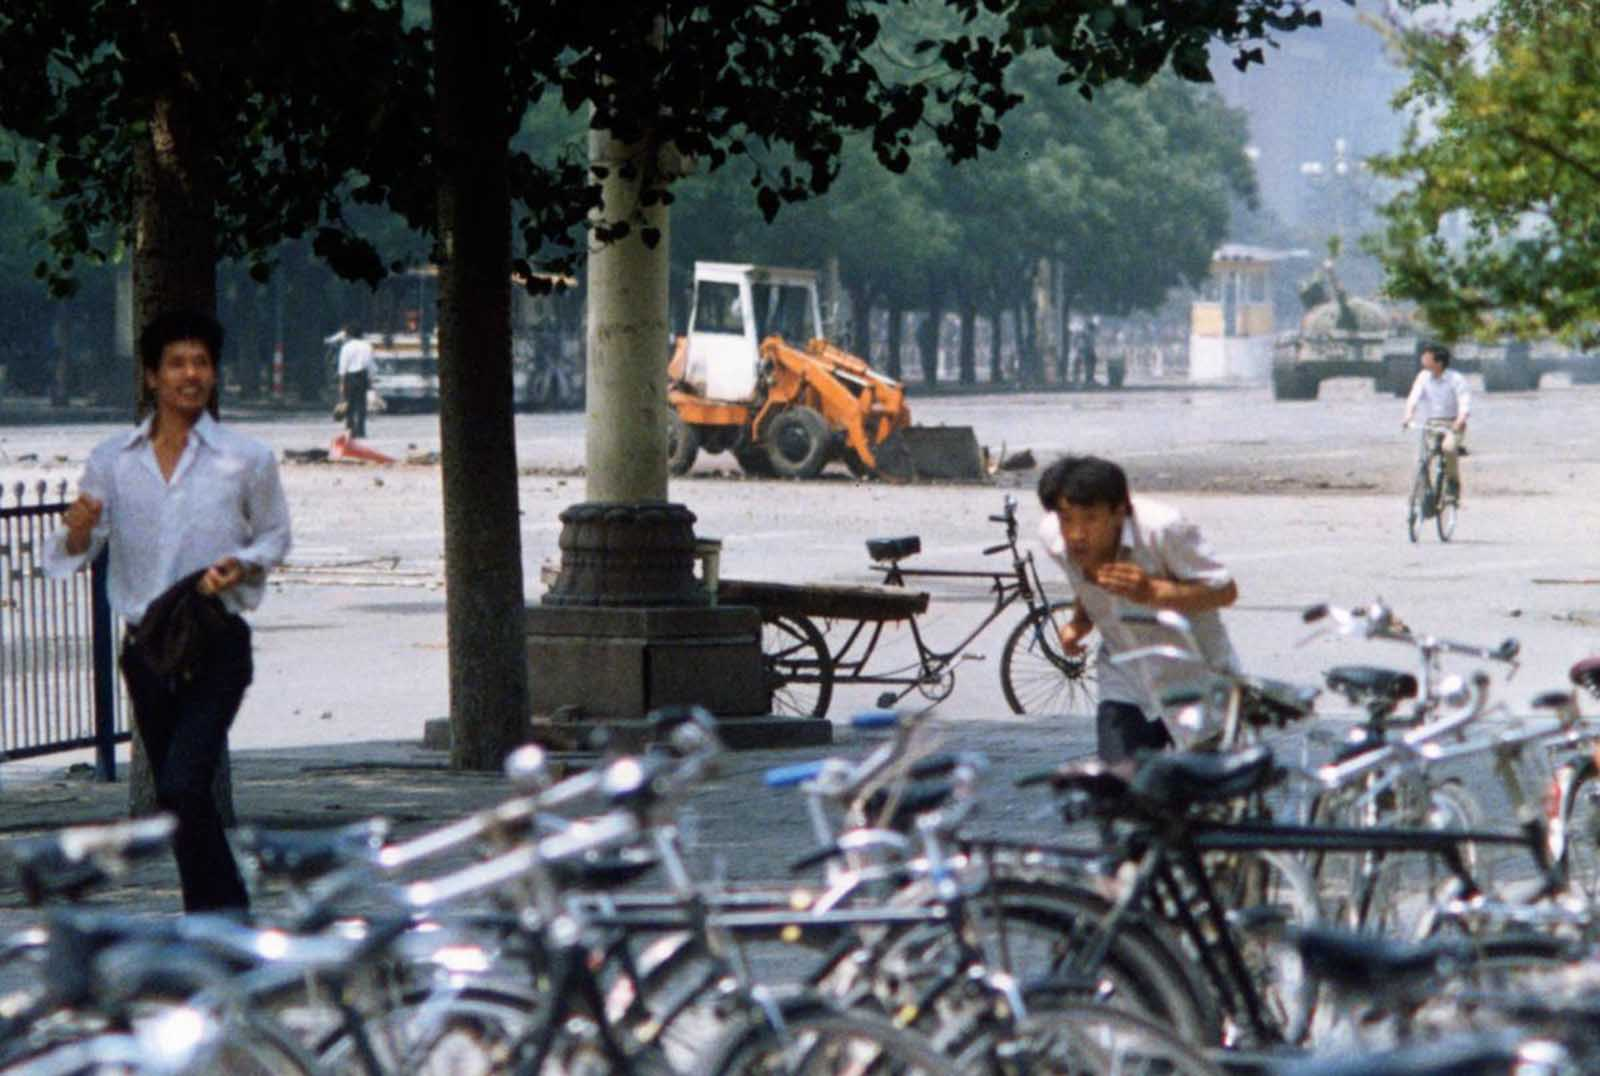 1 of 2) Three unidentified men flee as a Chinese man, background left, stands alone to block a line of approaching tanks, in Beijing's Tiananmen Square, on June 5, 1989. The man in the background stood his ground and blocked the column of tanks when they came closer, an image captured on film by numerous other photographers and one that ultimately became a widely reproduced symbol of events there.